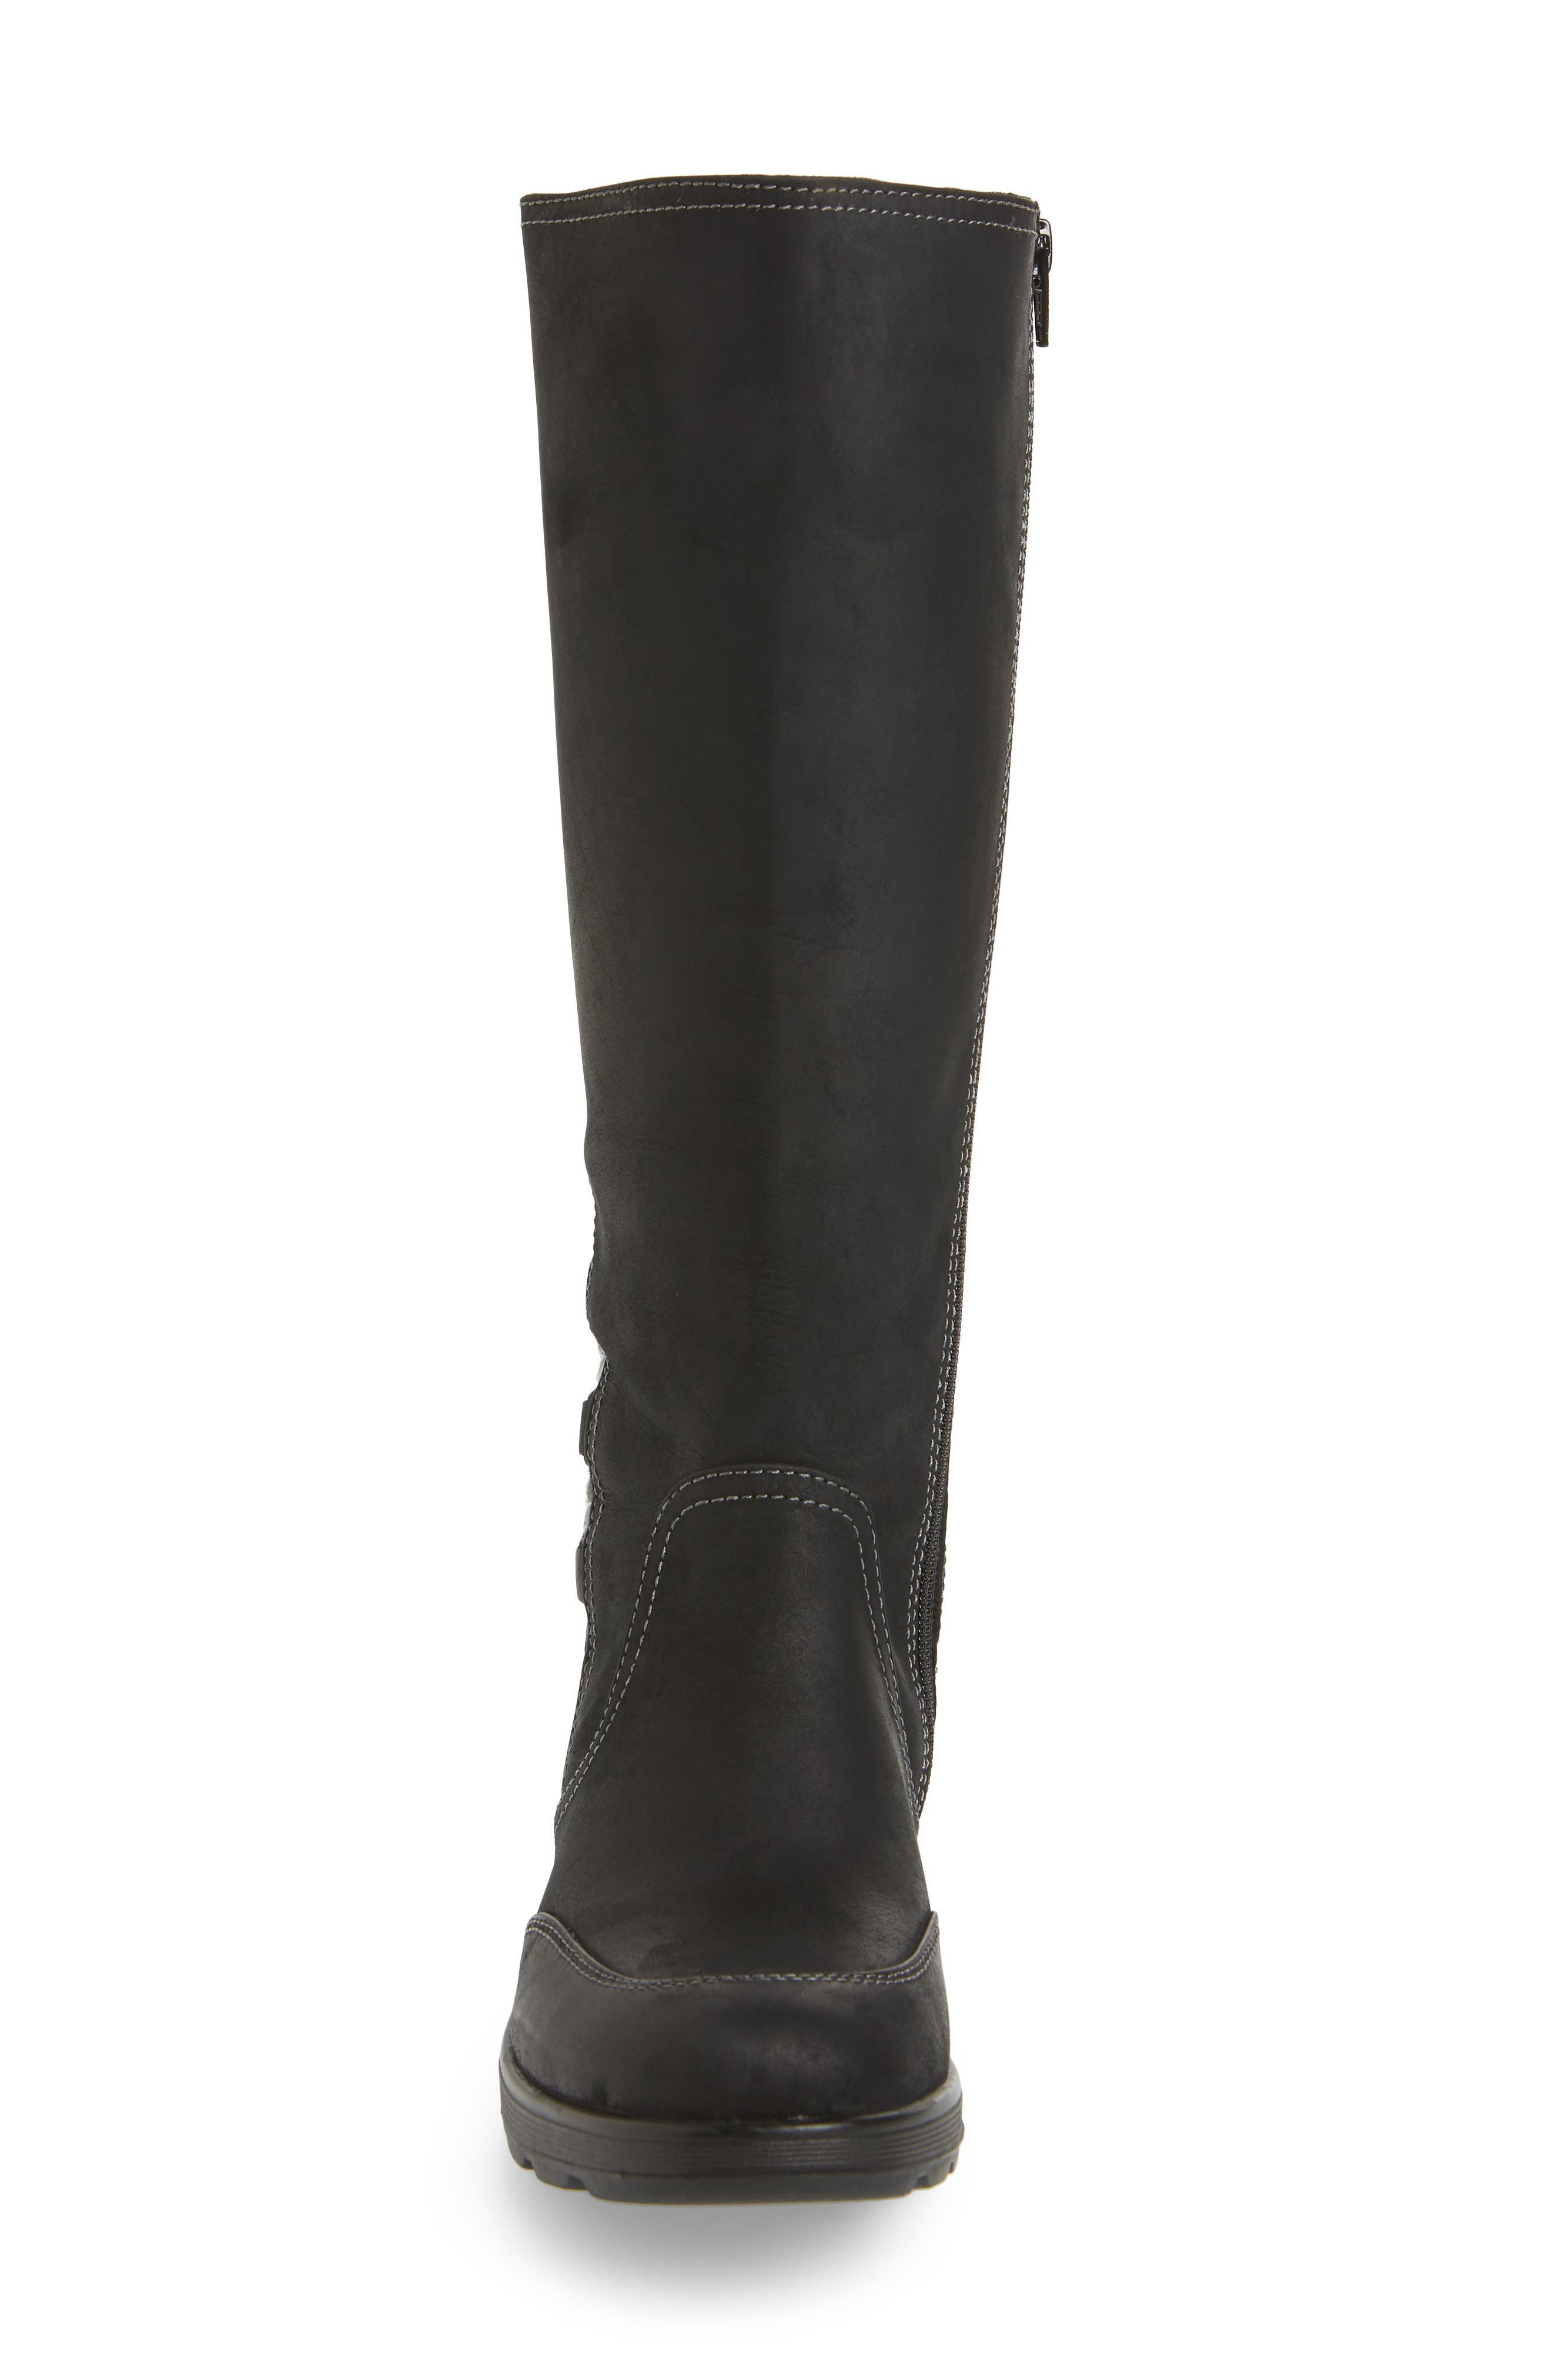 Epping Waterproof Knee High Boot,                             Alternate thumbnail 4, color,                             BLACK LEATHER